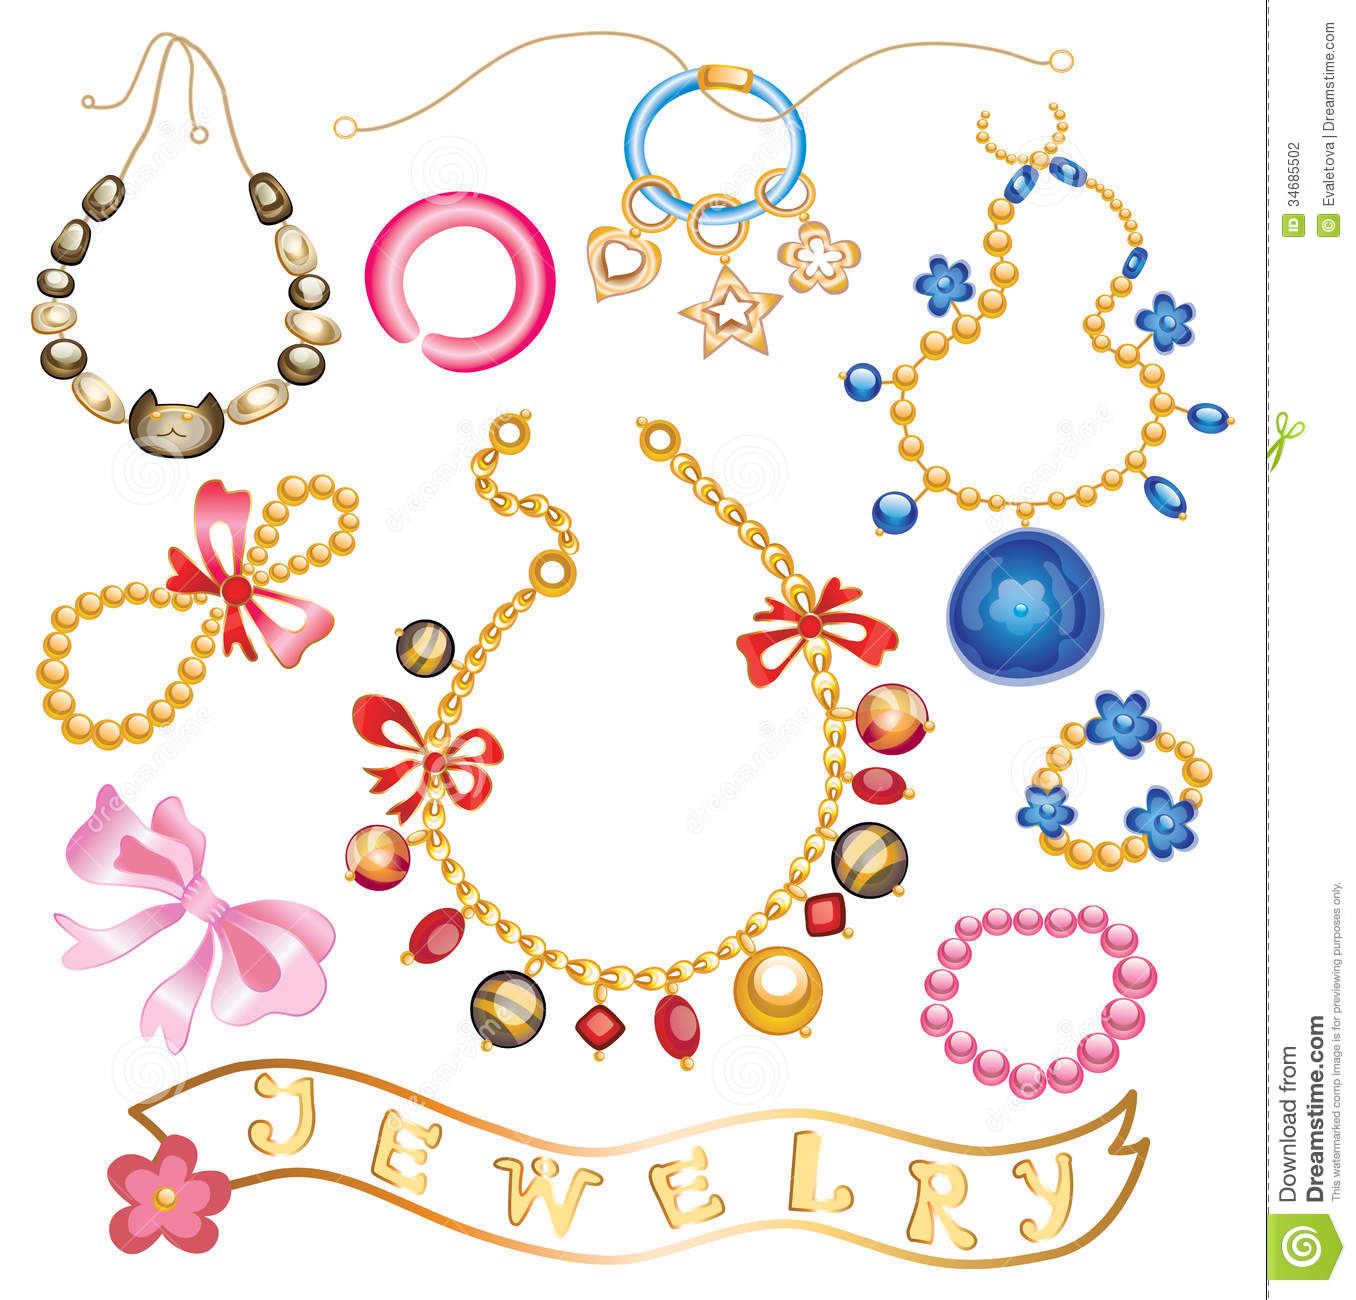 Jewelry clipart #14, Download drawings